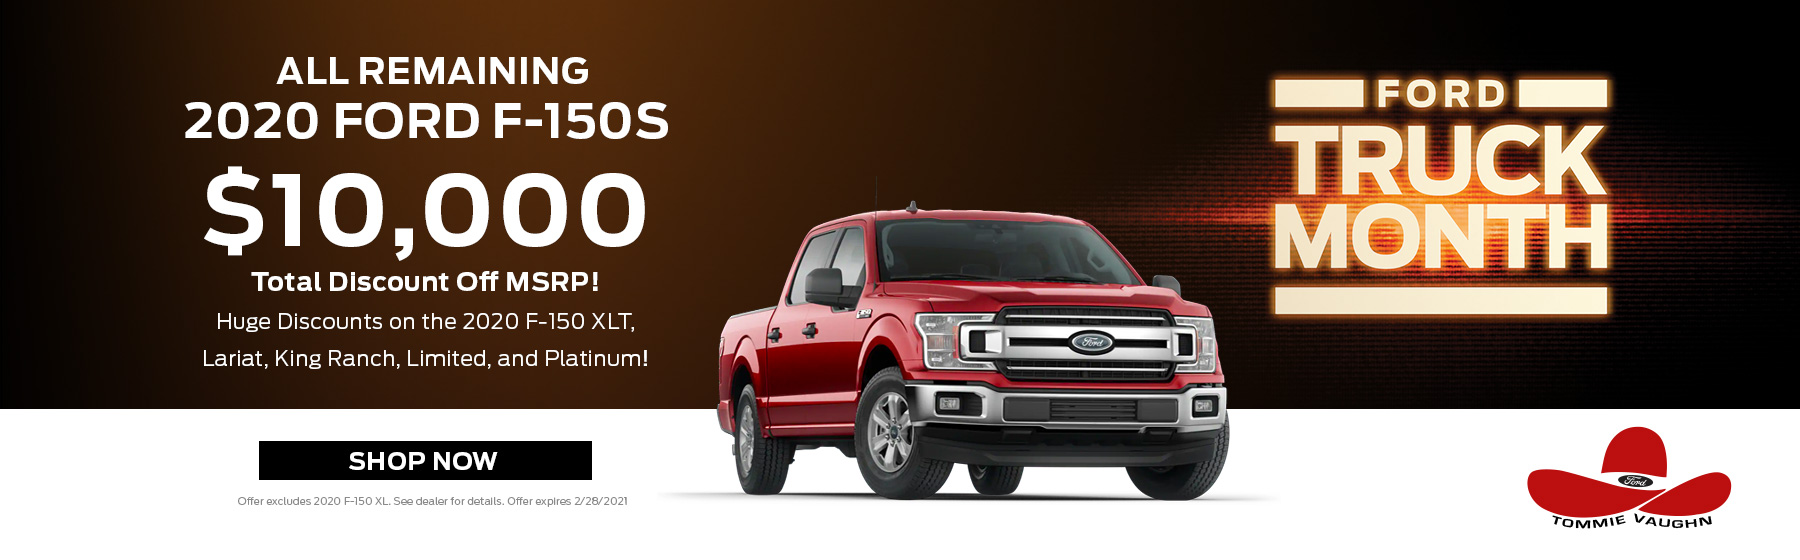 2020 F-150. $10,000 Off Most Trims!